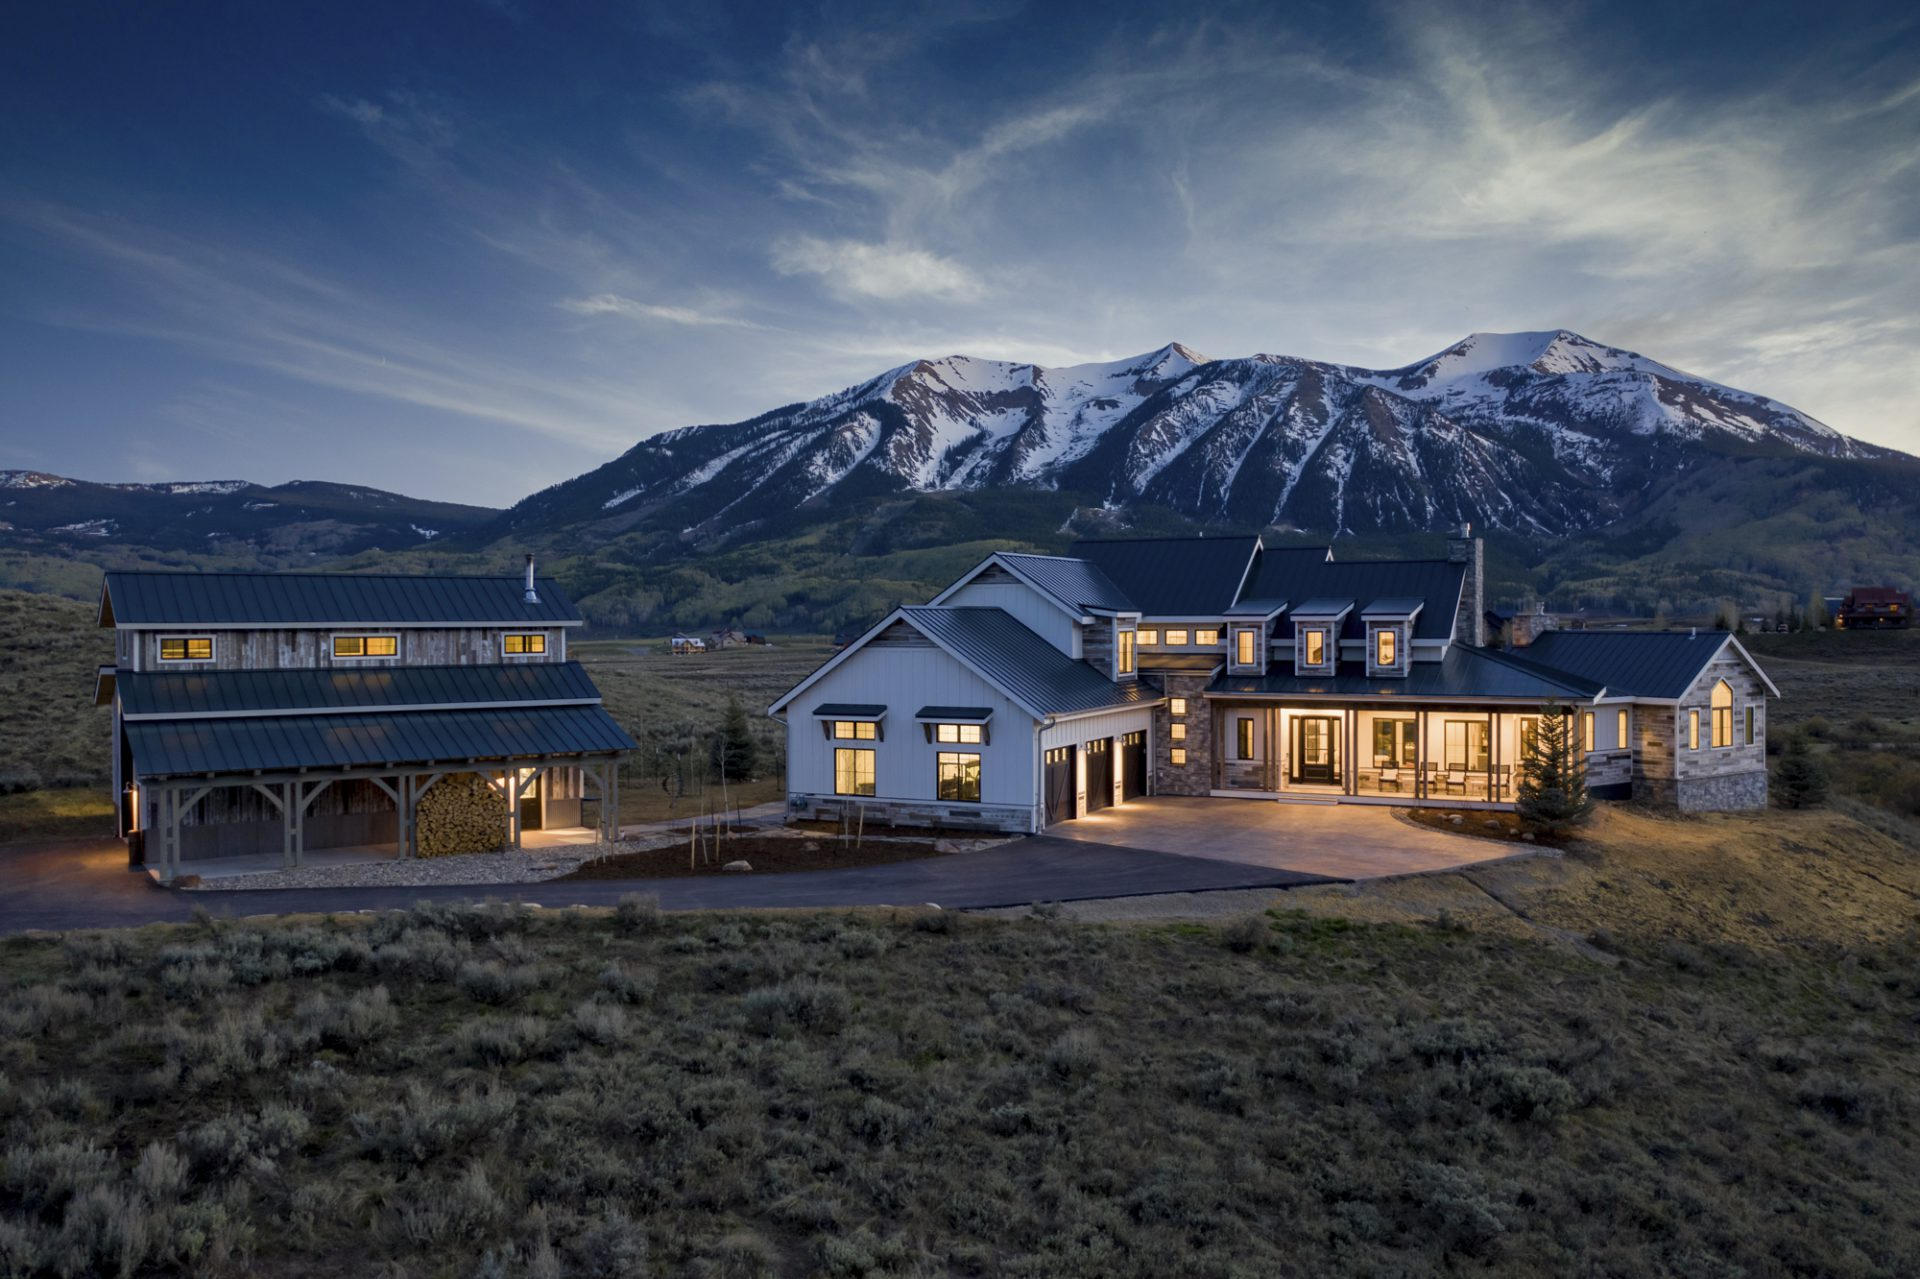 Lake-Ridge-Farmhouse-Somrak-Crested-Butte-Construction